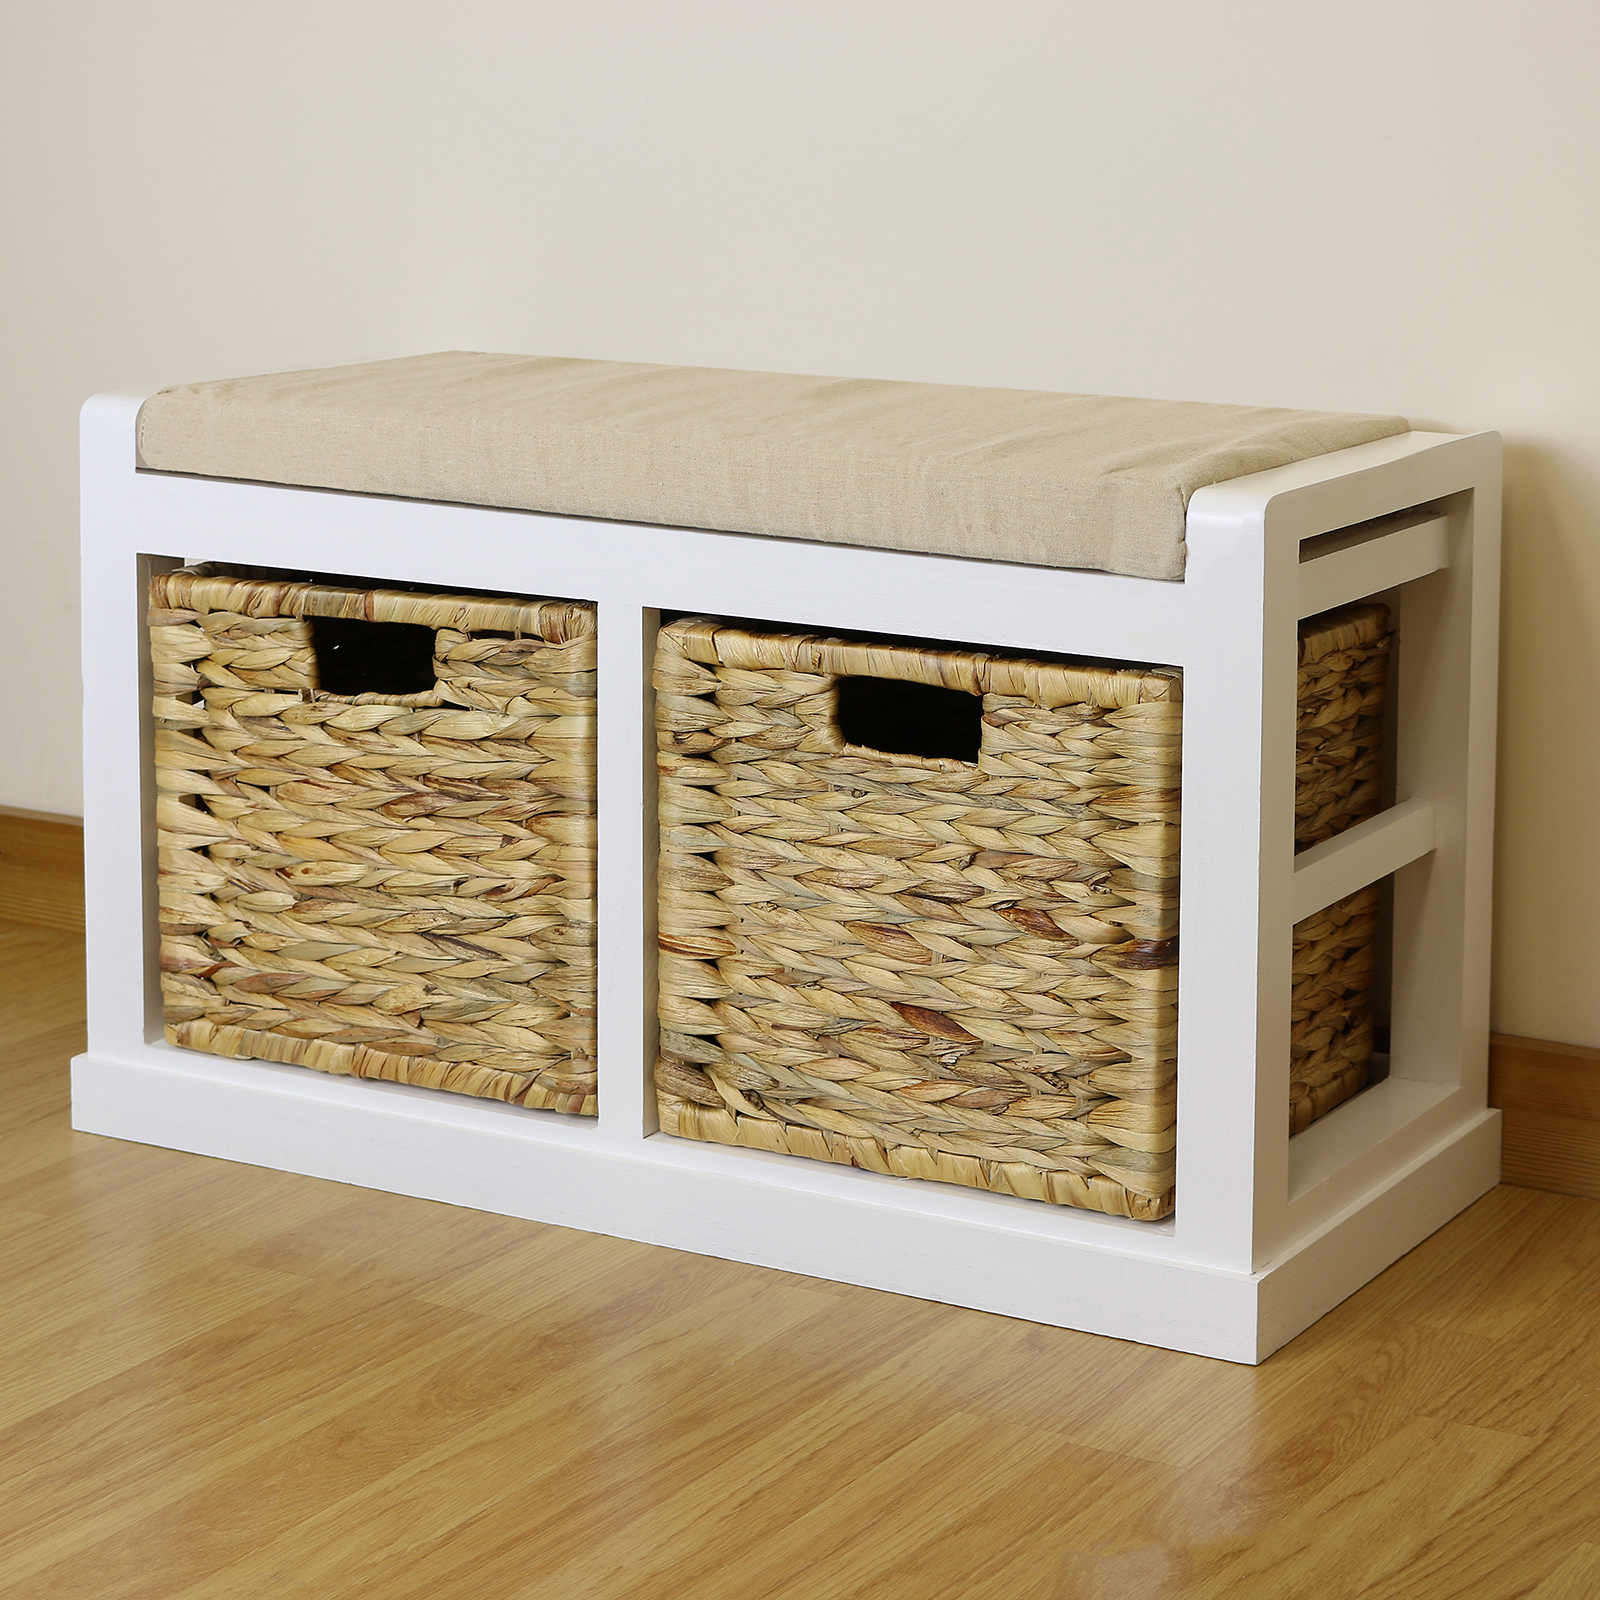 White hallway bathroom shoe storage bench seat foam wicker cushion 2 baskets ebay Shoe storage bench with cushion